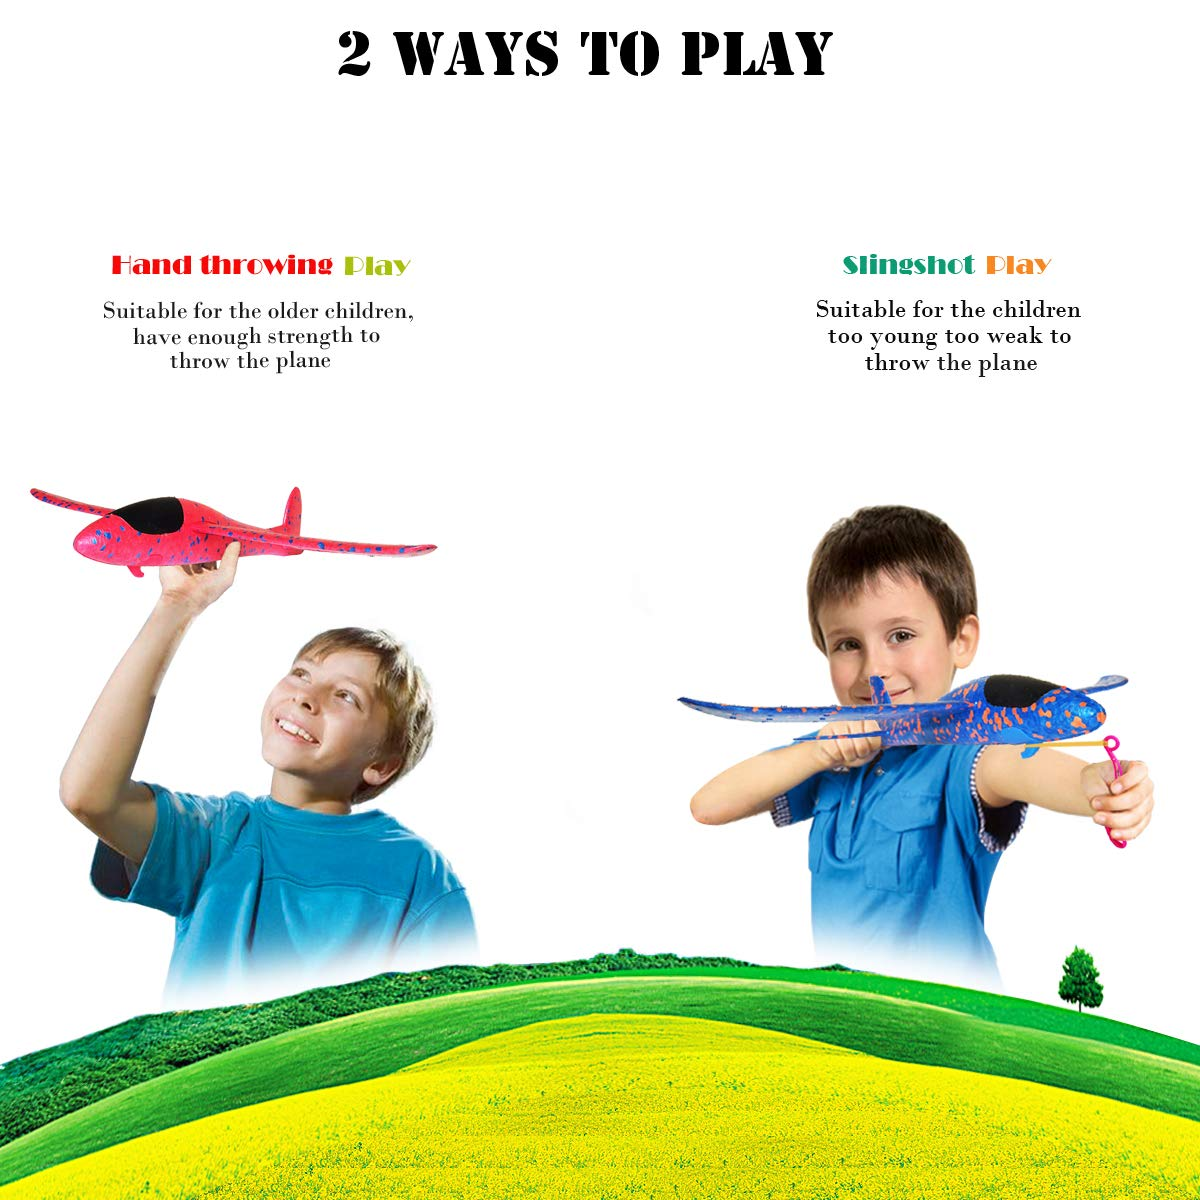 MIMIDOU 4 Pcs Catapult Slingshot Plane 2 Flight Mode Glider Airplane 2 Ways to Play Outdoor Flying Toy for Kids as Gift. by MIMIDOU (Image #2)